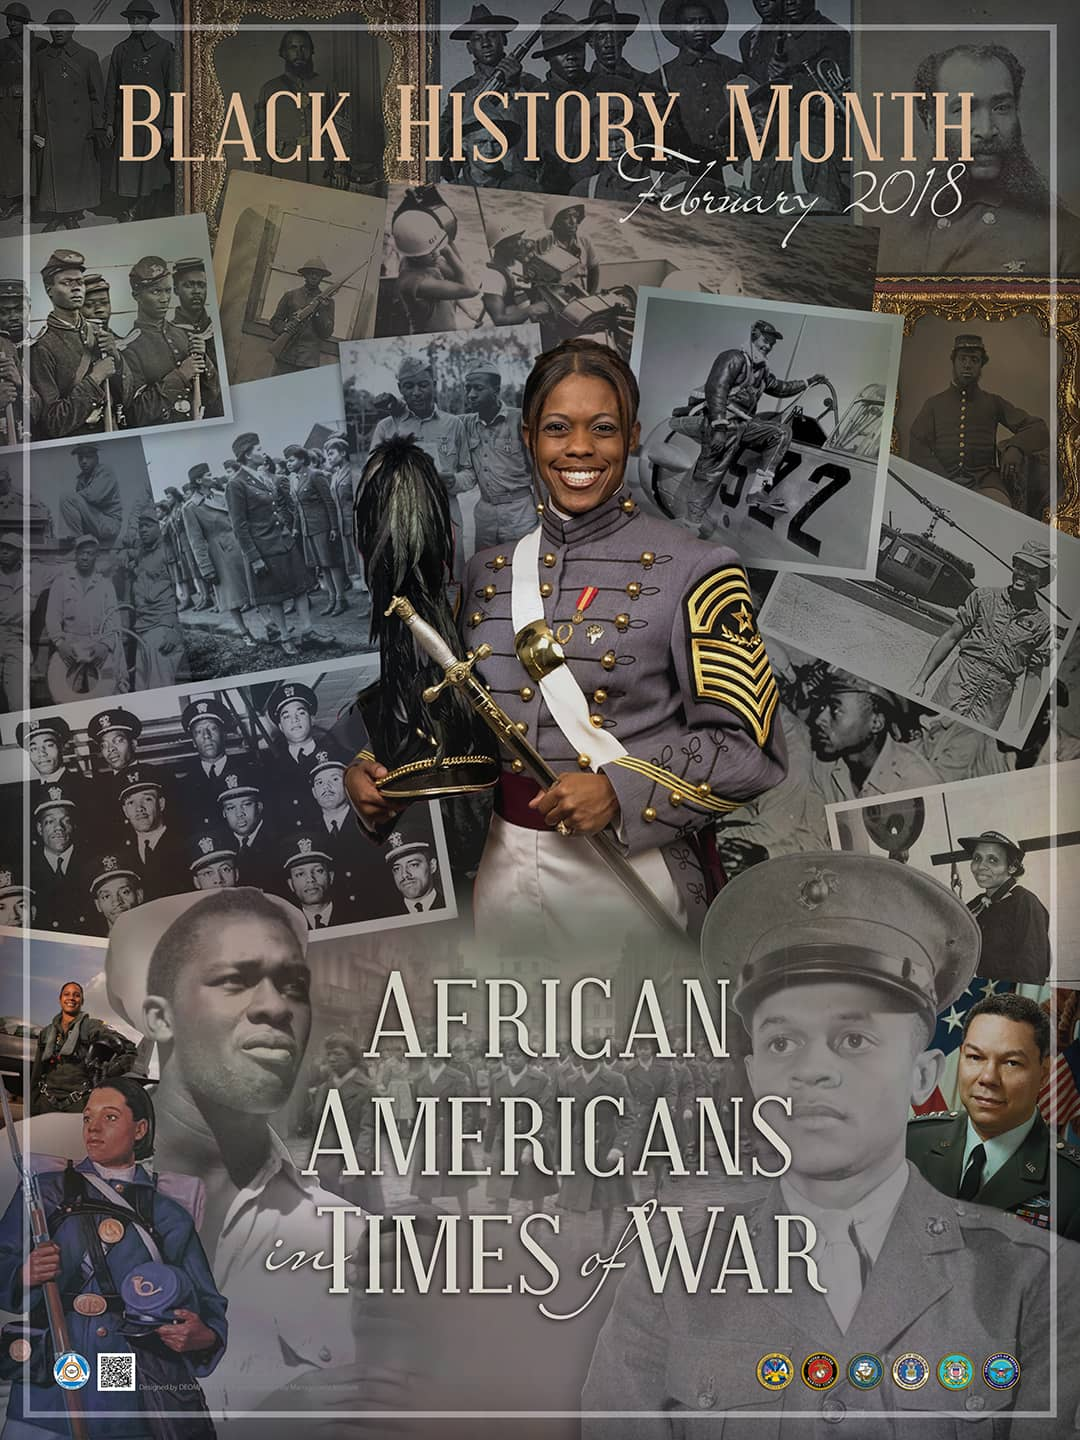 A poster displays Black History Month February 2018 with the theme: African Americans in Times of War.